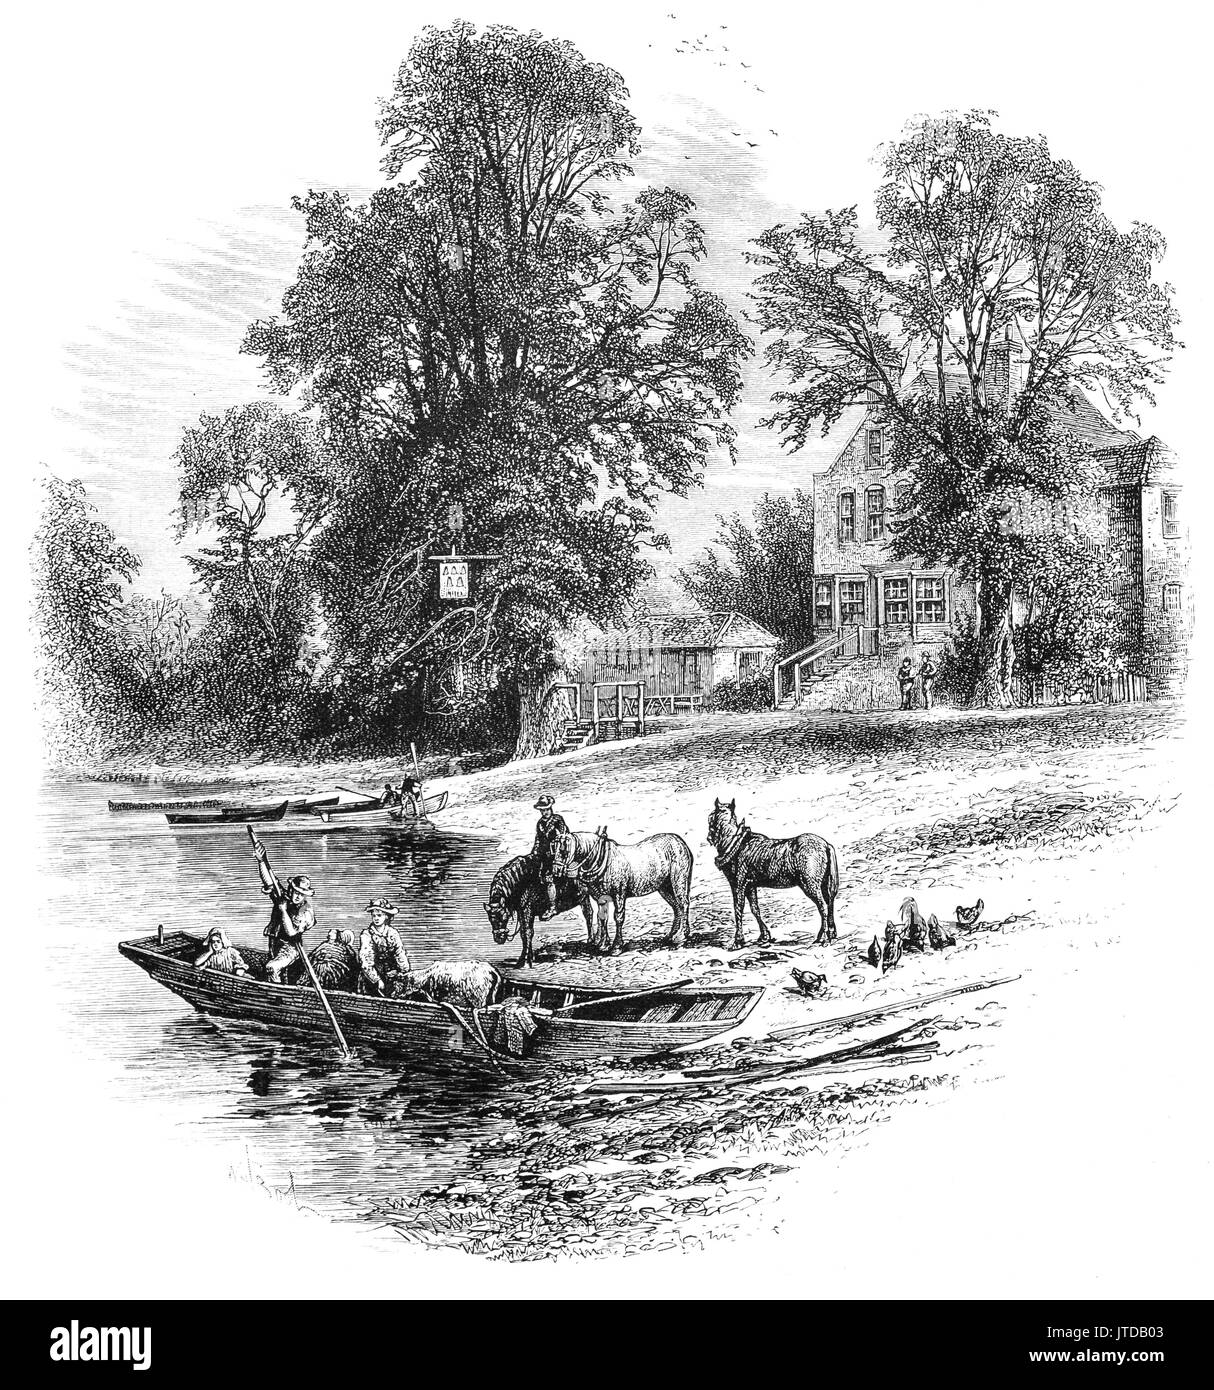 1870: A small Ferry near the Bells of Ouseley Pub on the River The River Thames at Old Windsor, Berkshire, England.  The 'Bells of Ouseley' Pub is supposed to commemorate the bells of Osney Abbey which were brought downstream at the dissolution and disappeared into the mud at this point. - Stock Image